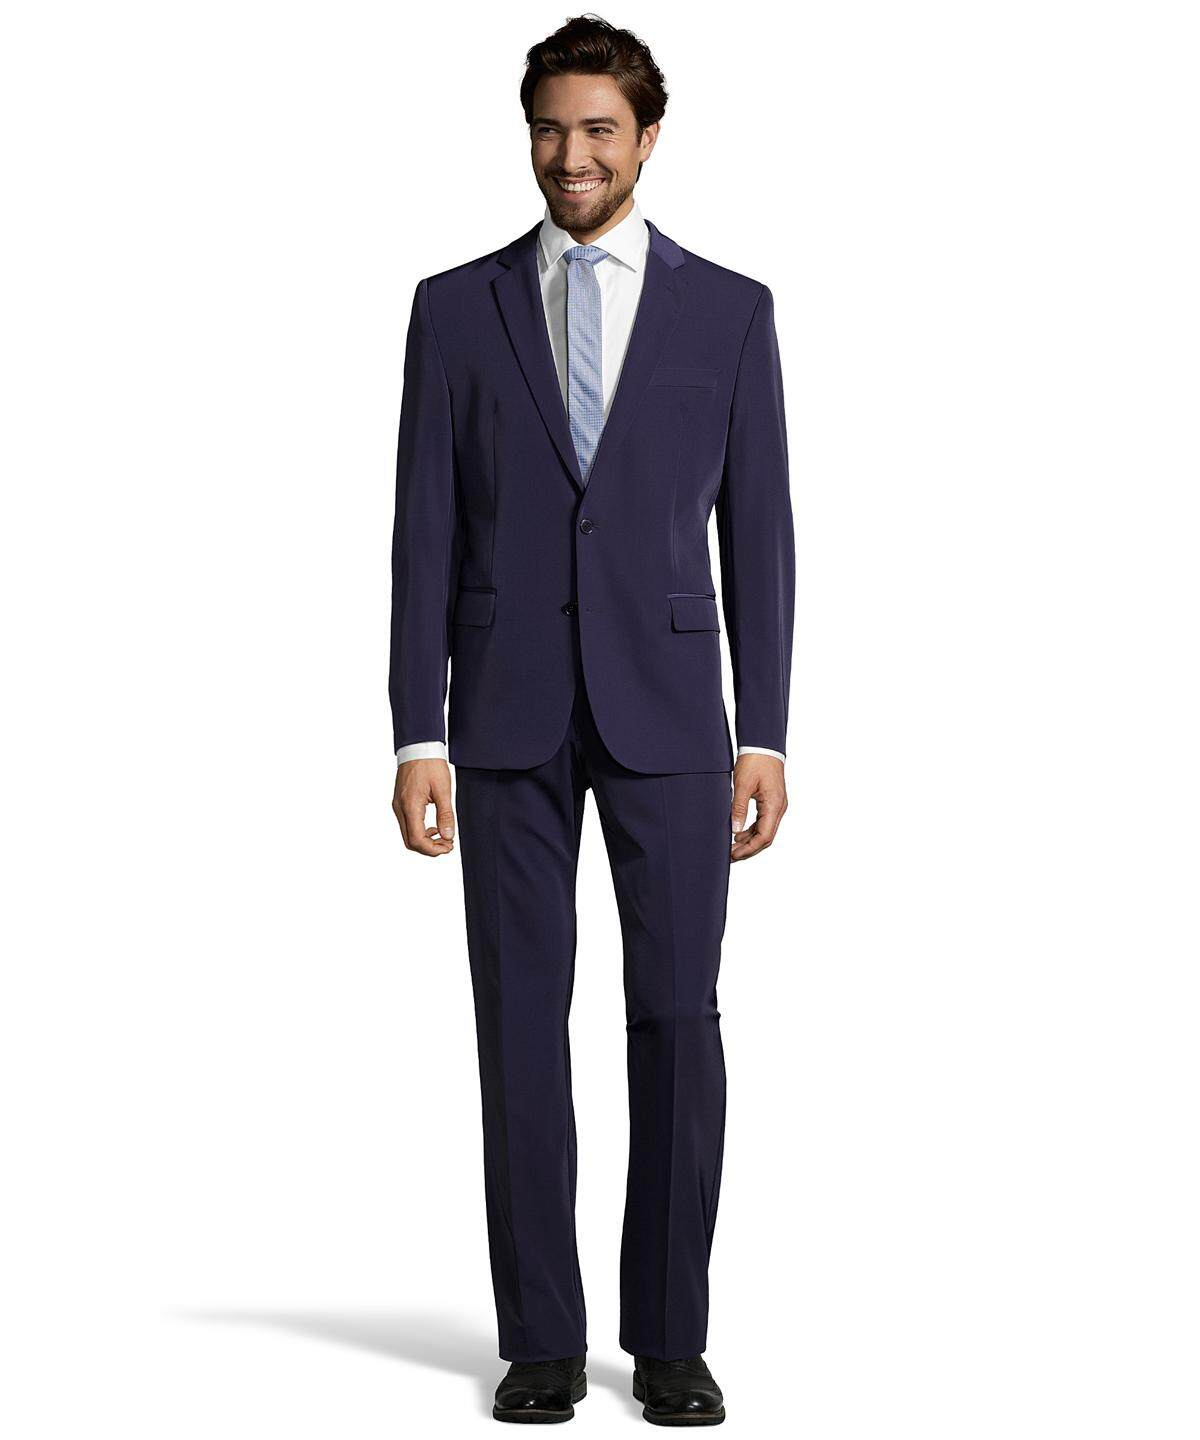 Men's Dark Blue Blazer 2 Button, black suit design (Premium Quality)